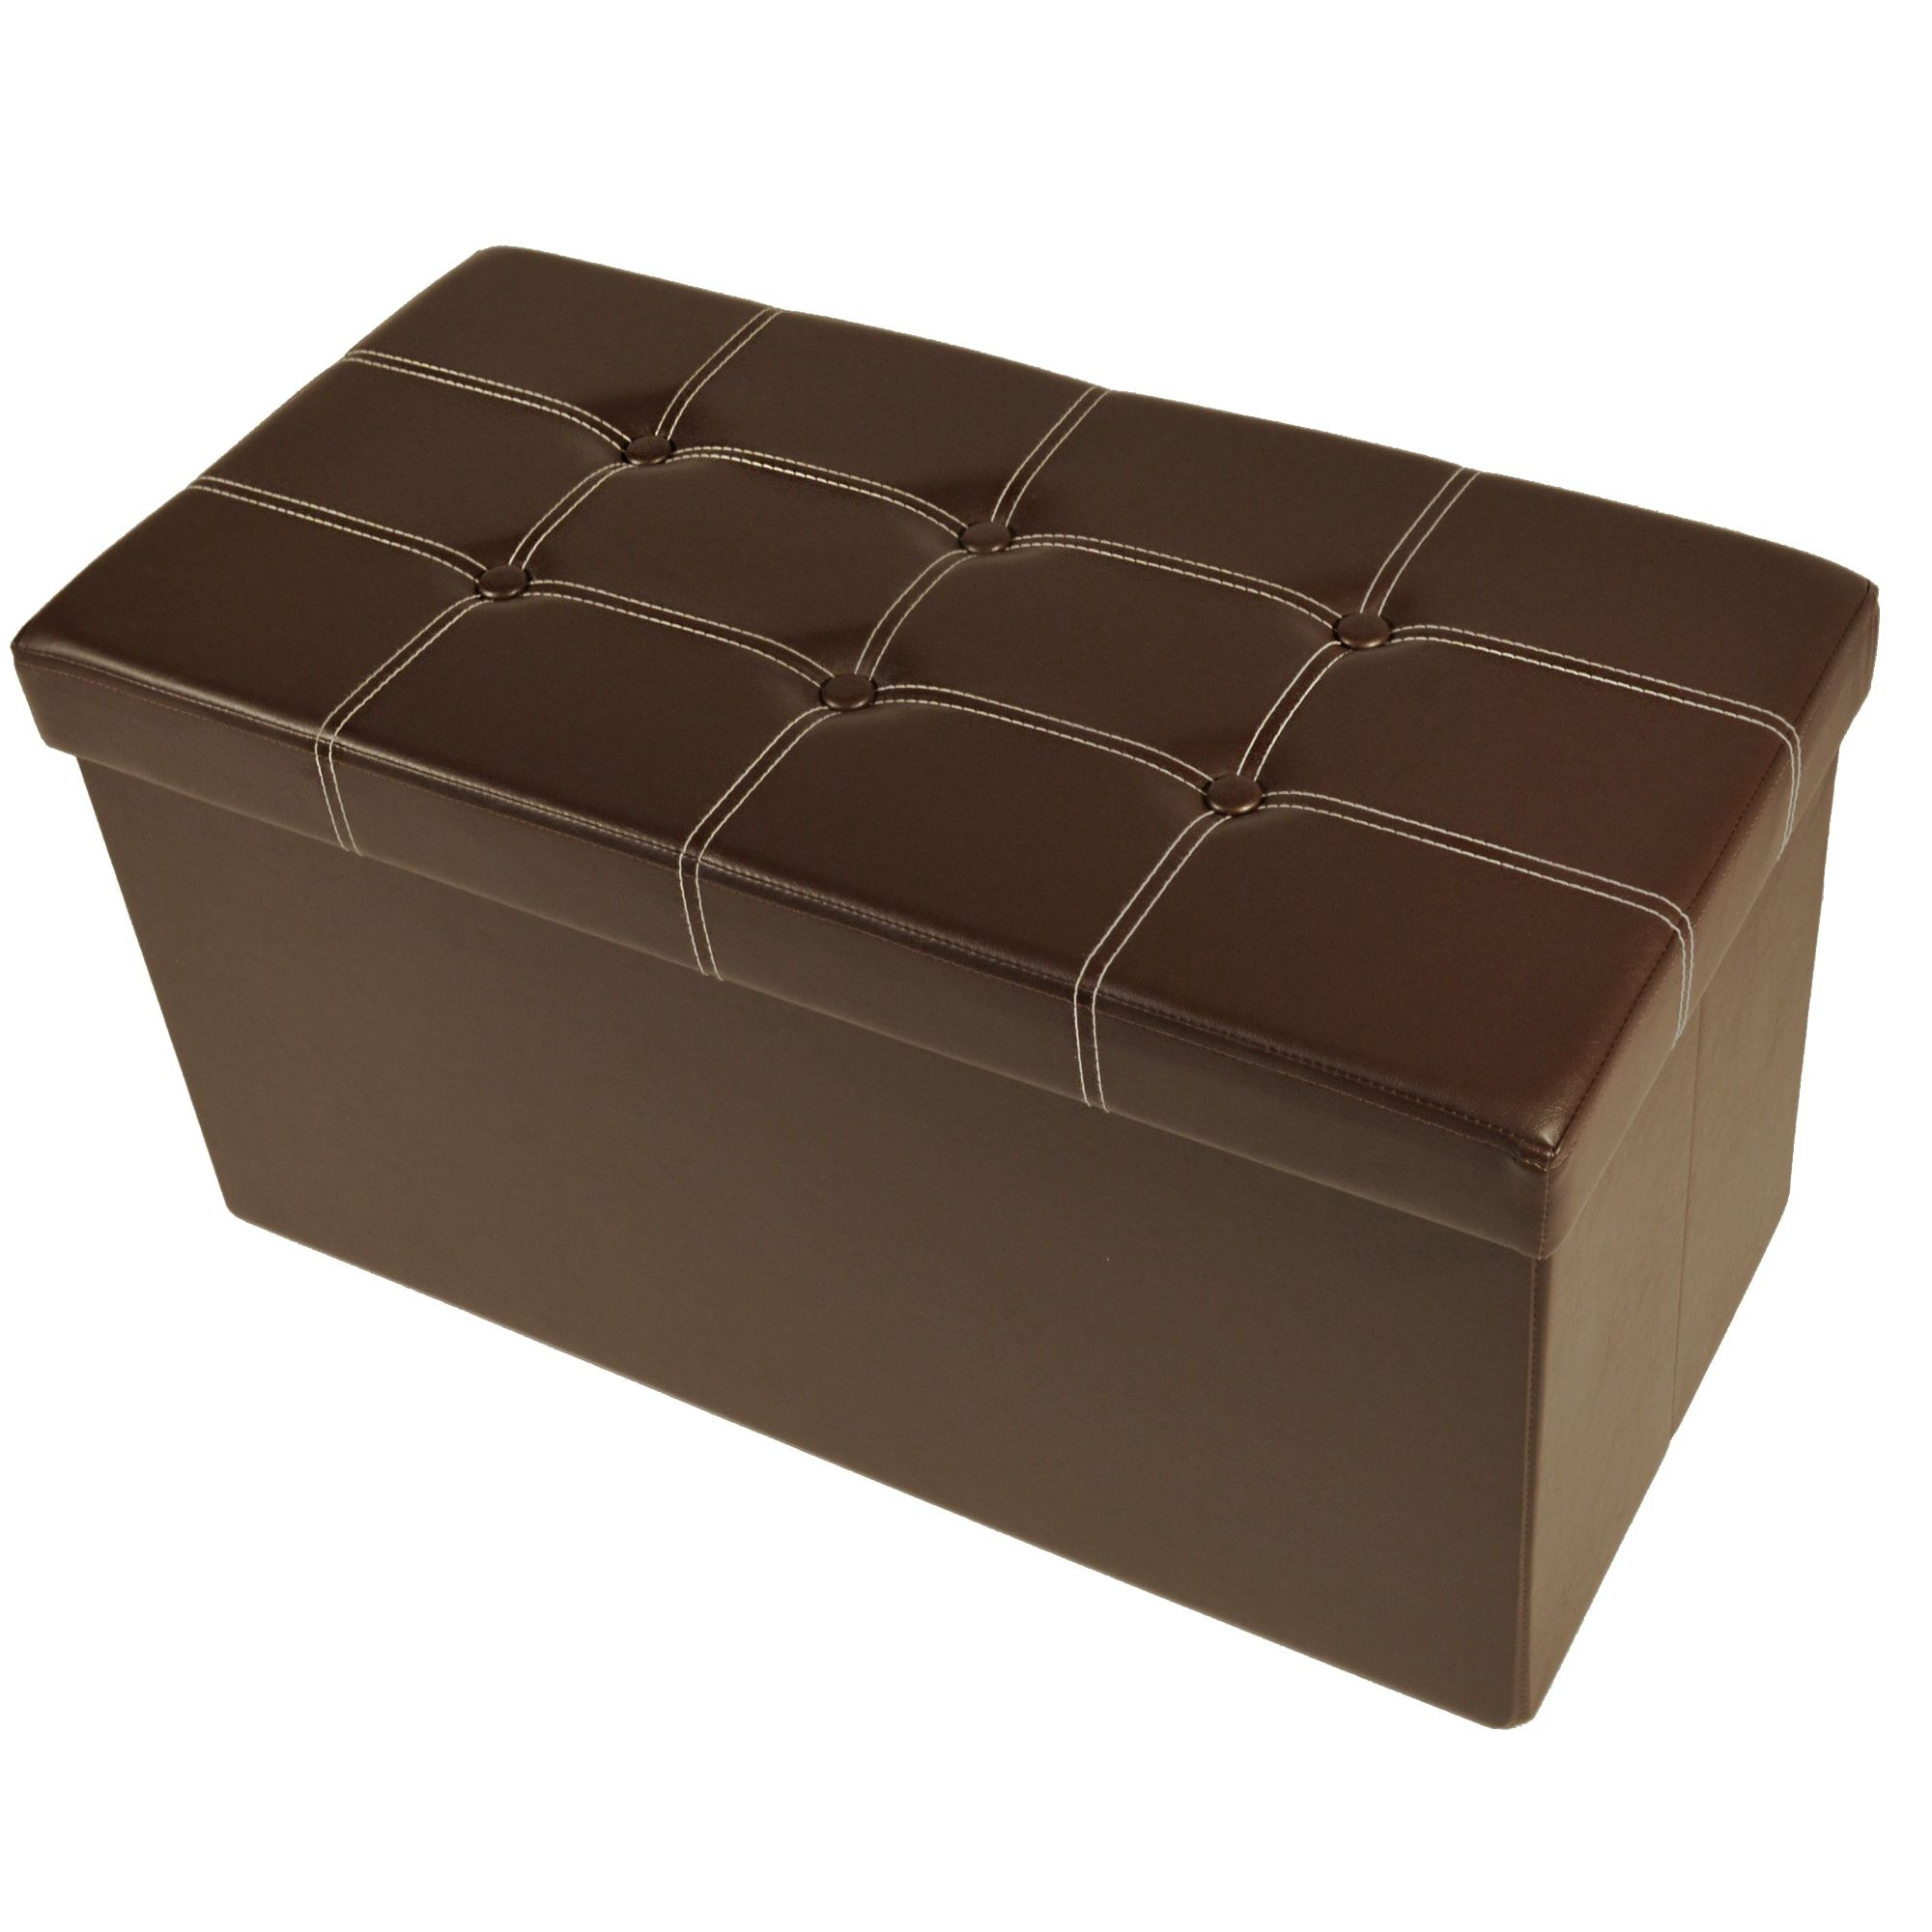 Collapsible Tufted Storage Ottoman - Faux Leather 30x15x15 (Black ...